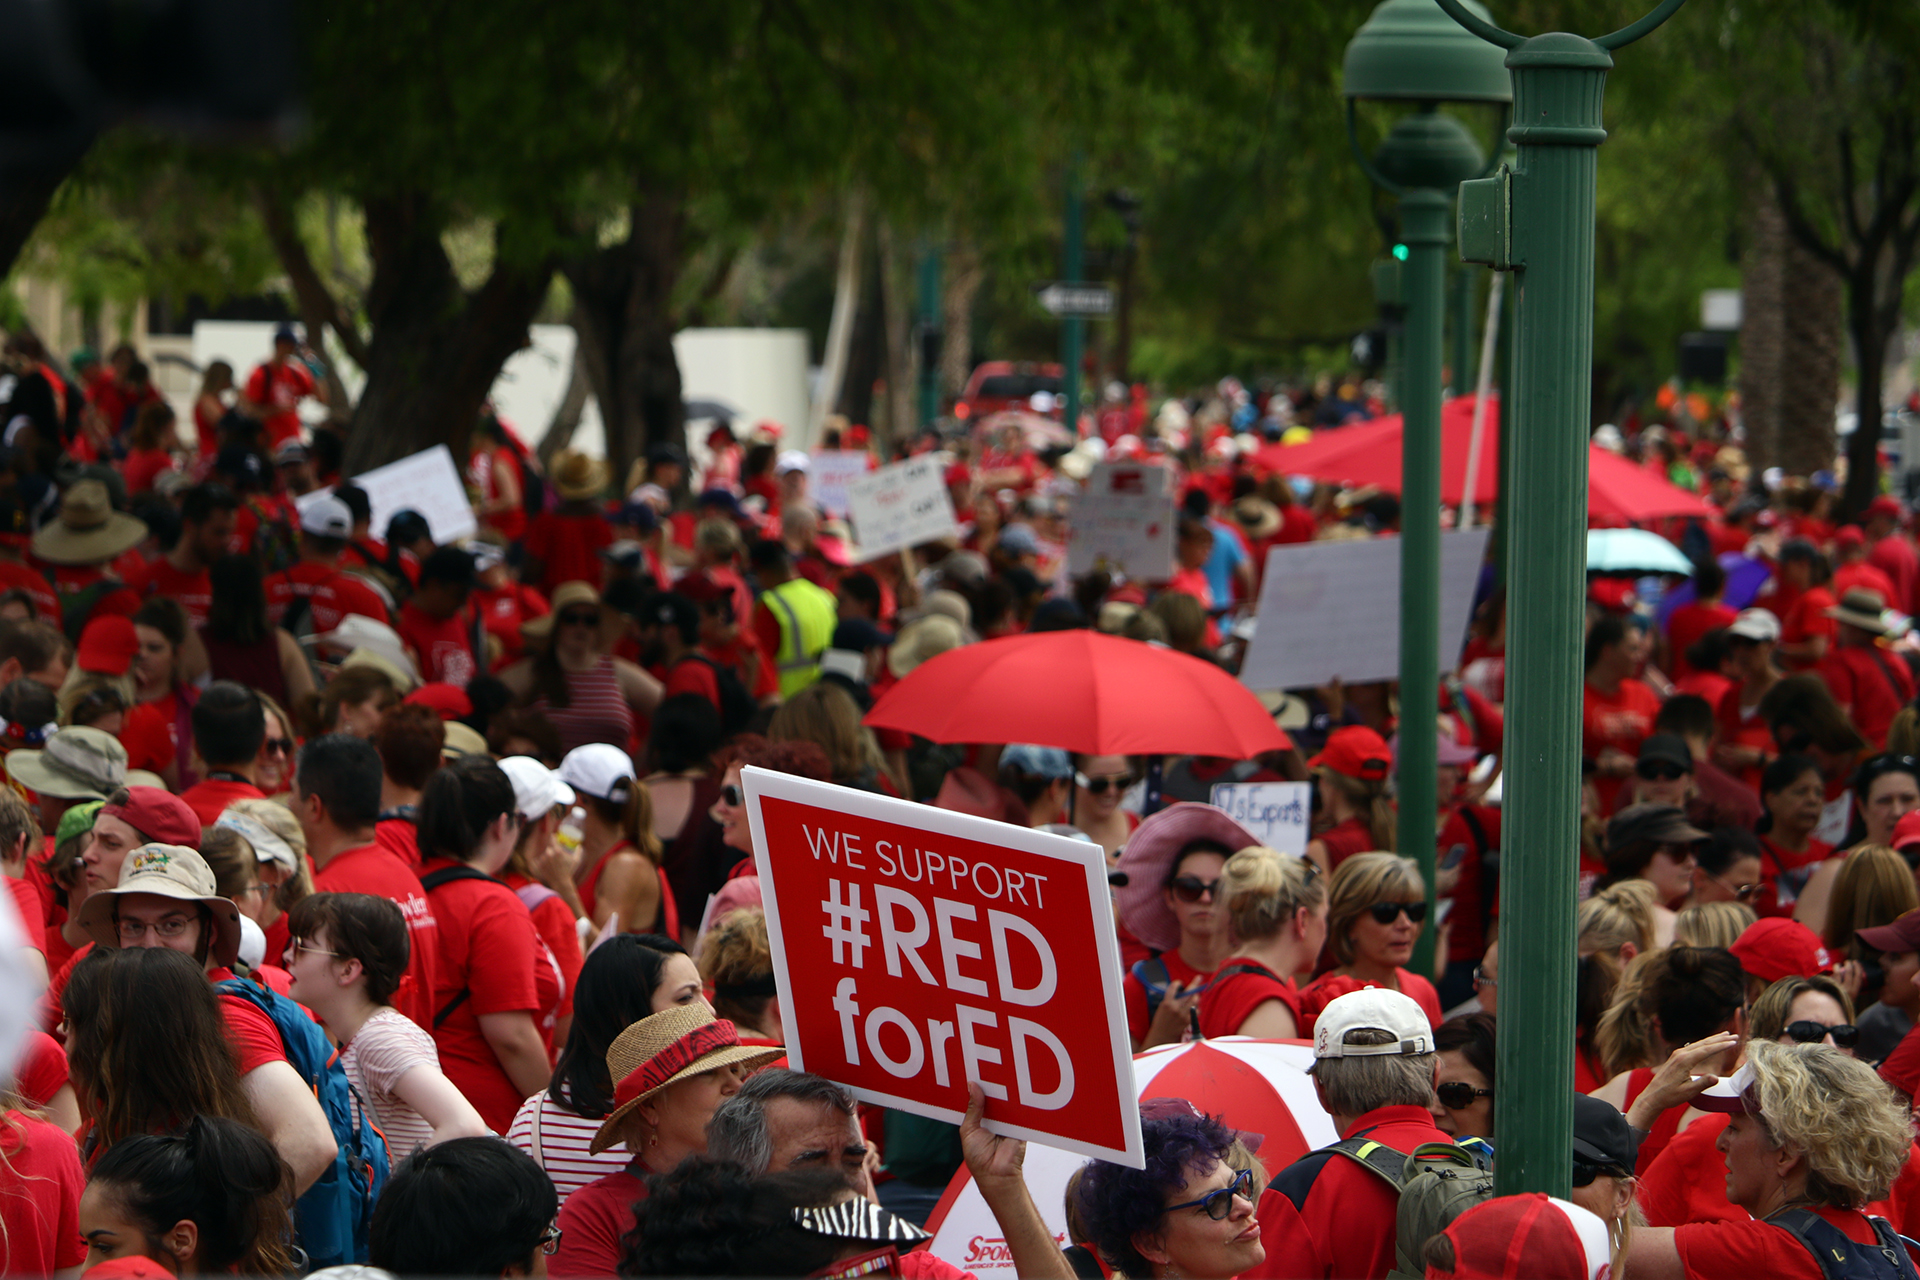 Supporters for #RedforEd holding protests on April 27th, 2018. (Jackie Hai/KJZZ)